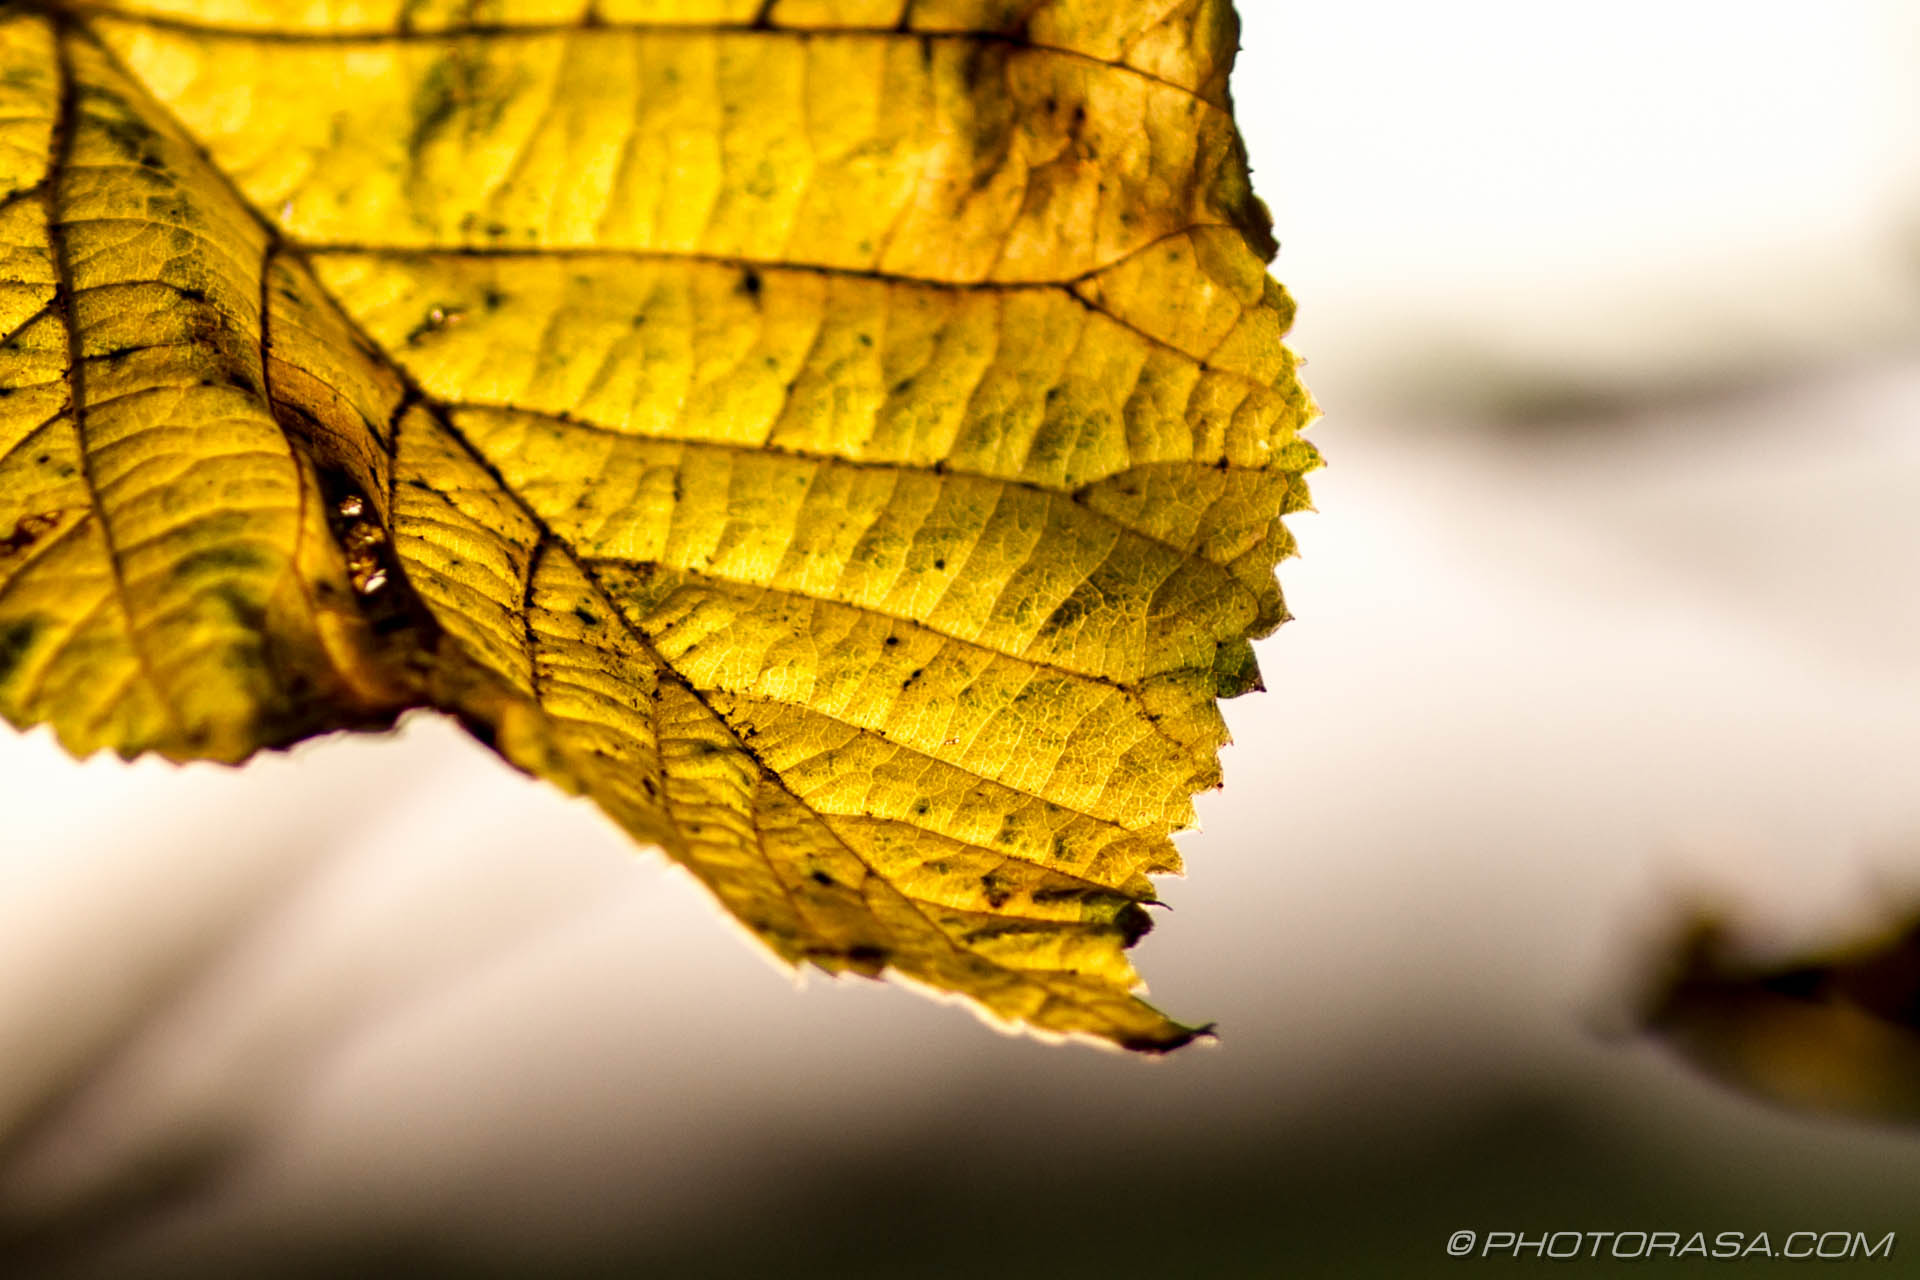 http://photorasa.com/leaves/yellow-autumn-leaf/